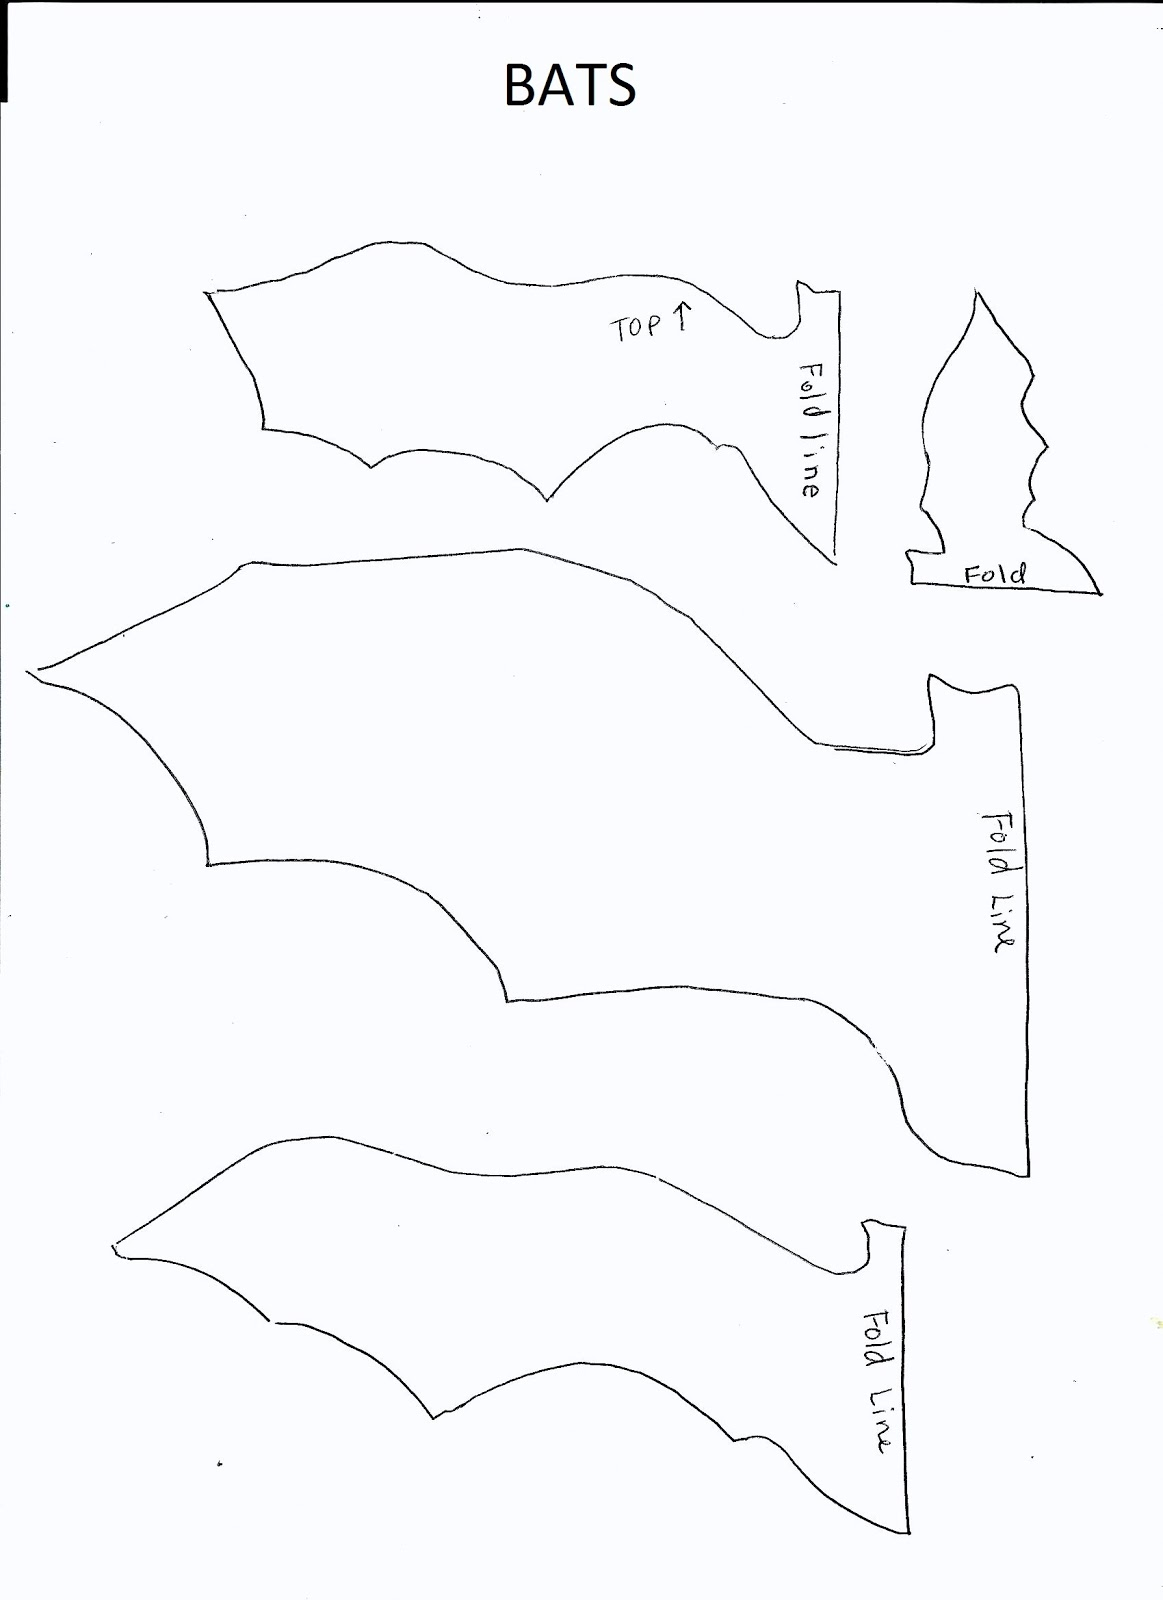 Bat drawing template